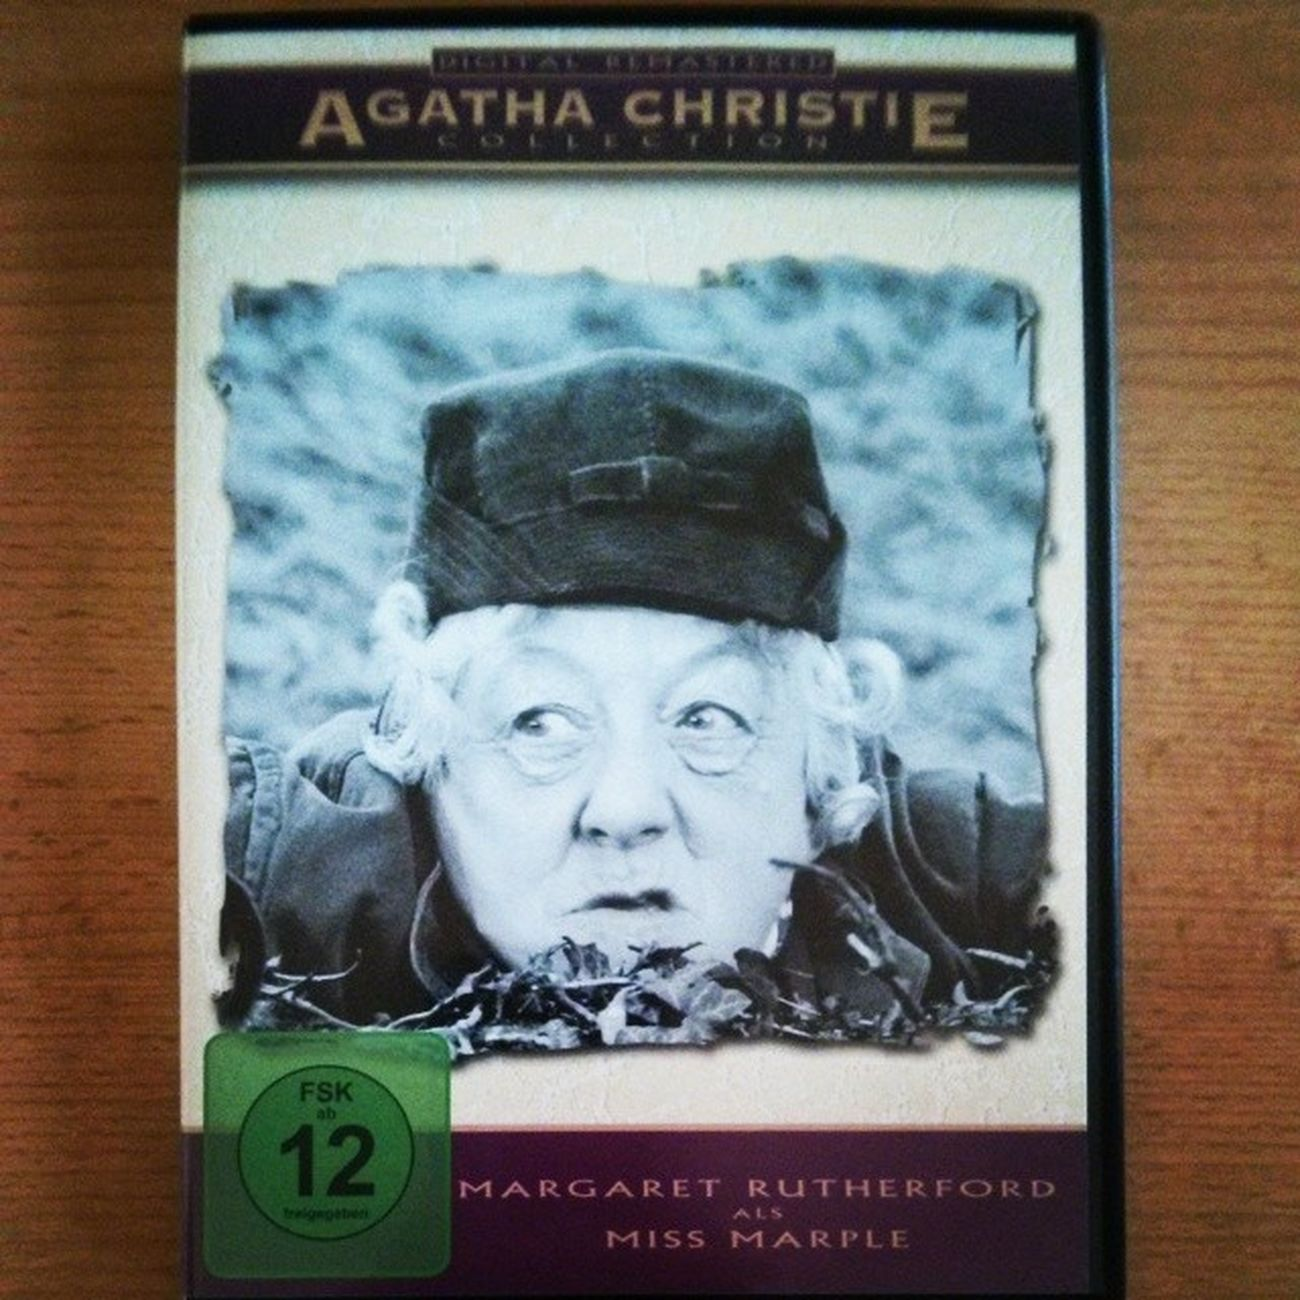 Miss Marple Collection Margaretrutherford Missmarple Krimi DVD agathachristie